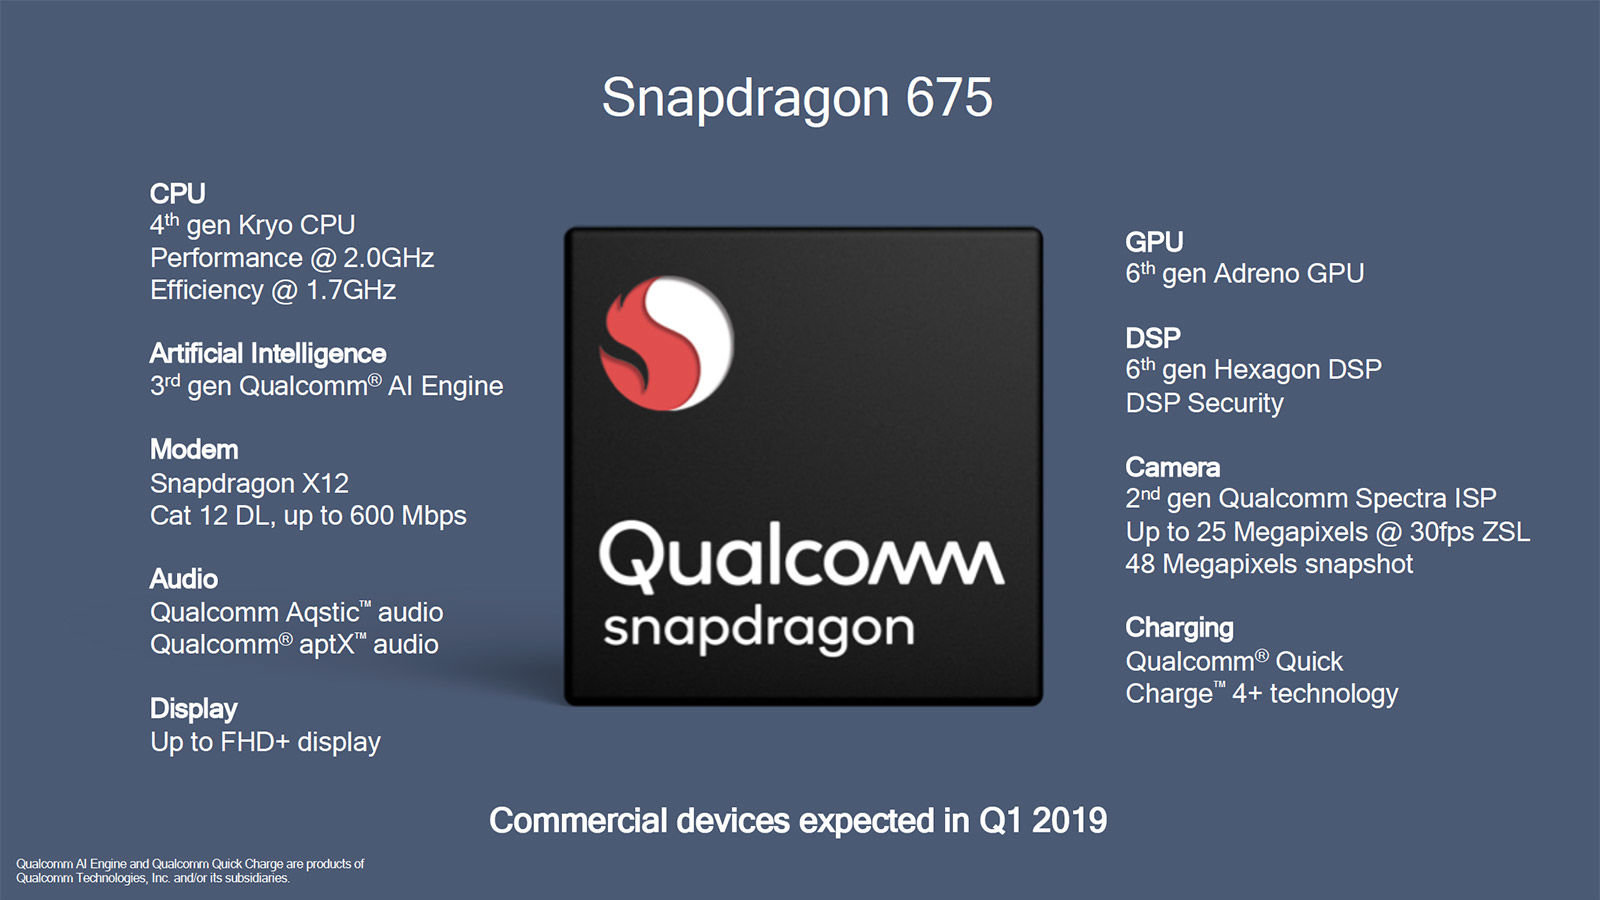 Snapdragon qualcom 675